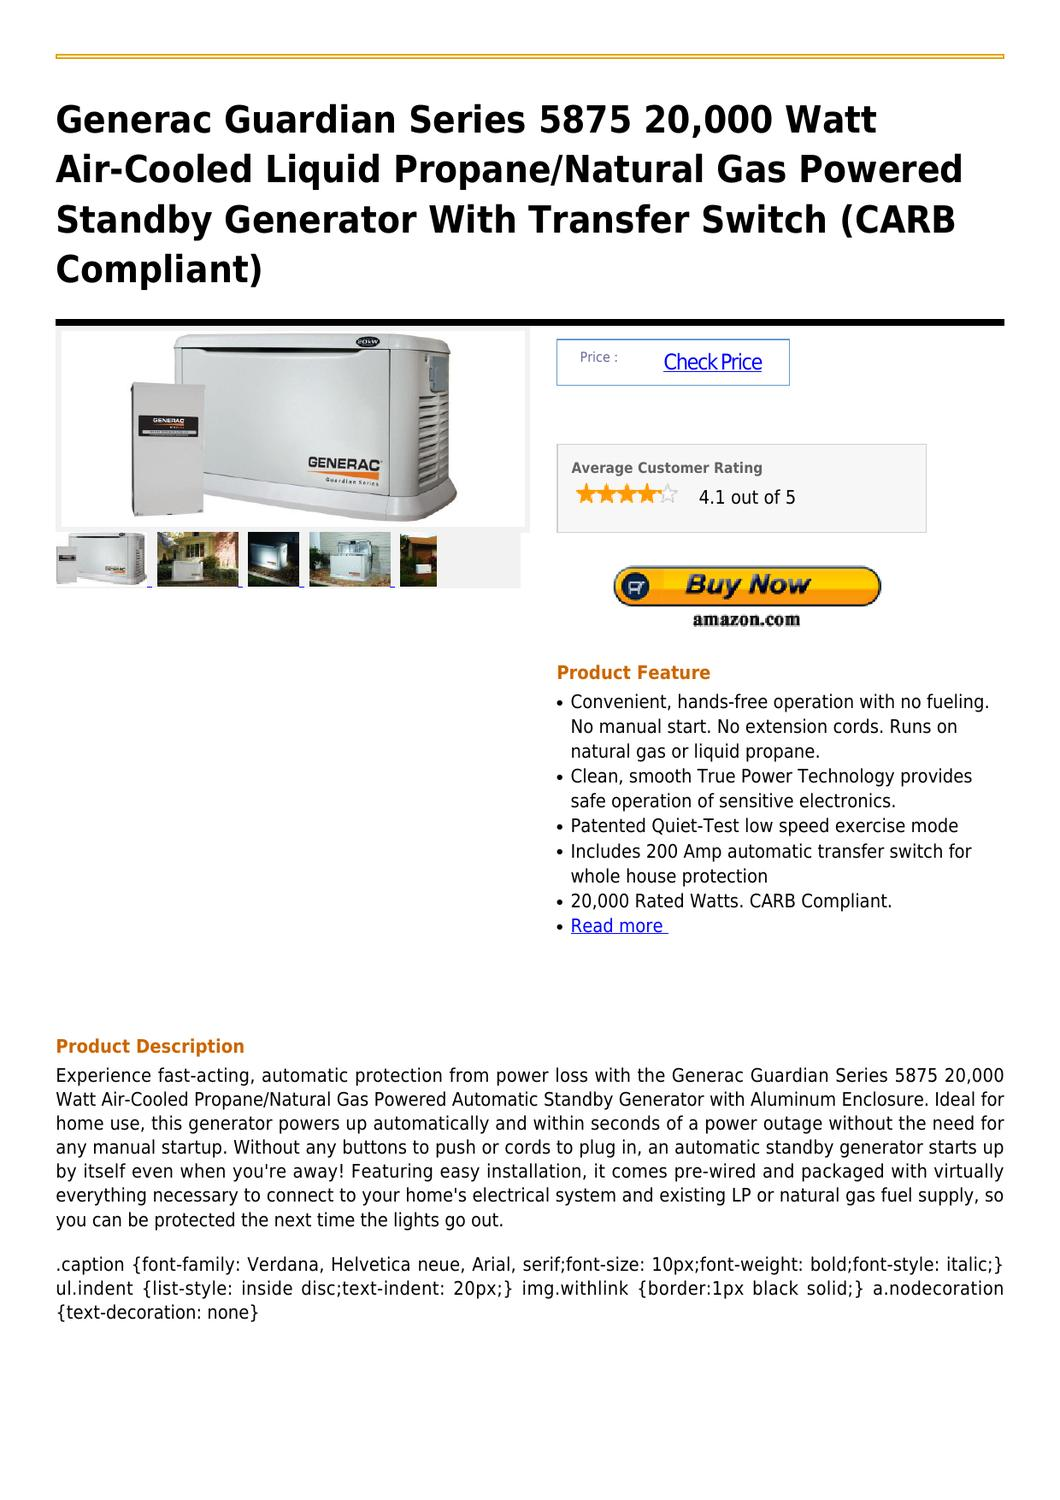 hight resolution of generac guardian series 5875 20 000 watt air cooled liquid propane natural gas powered standby gener